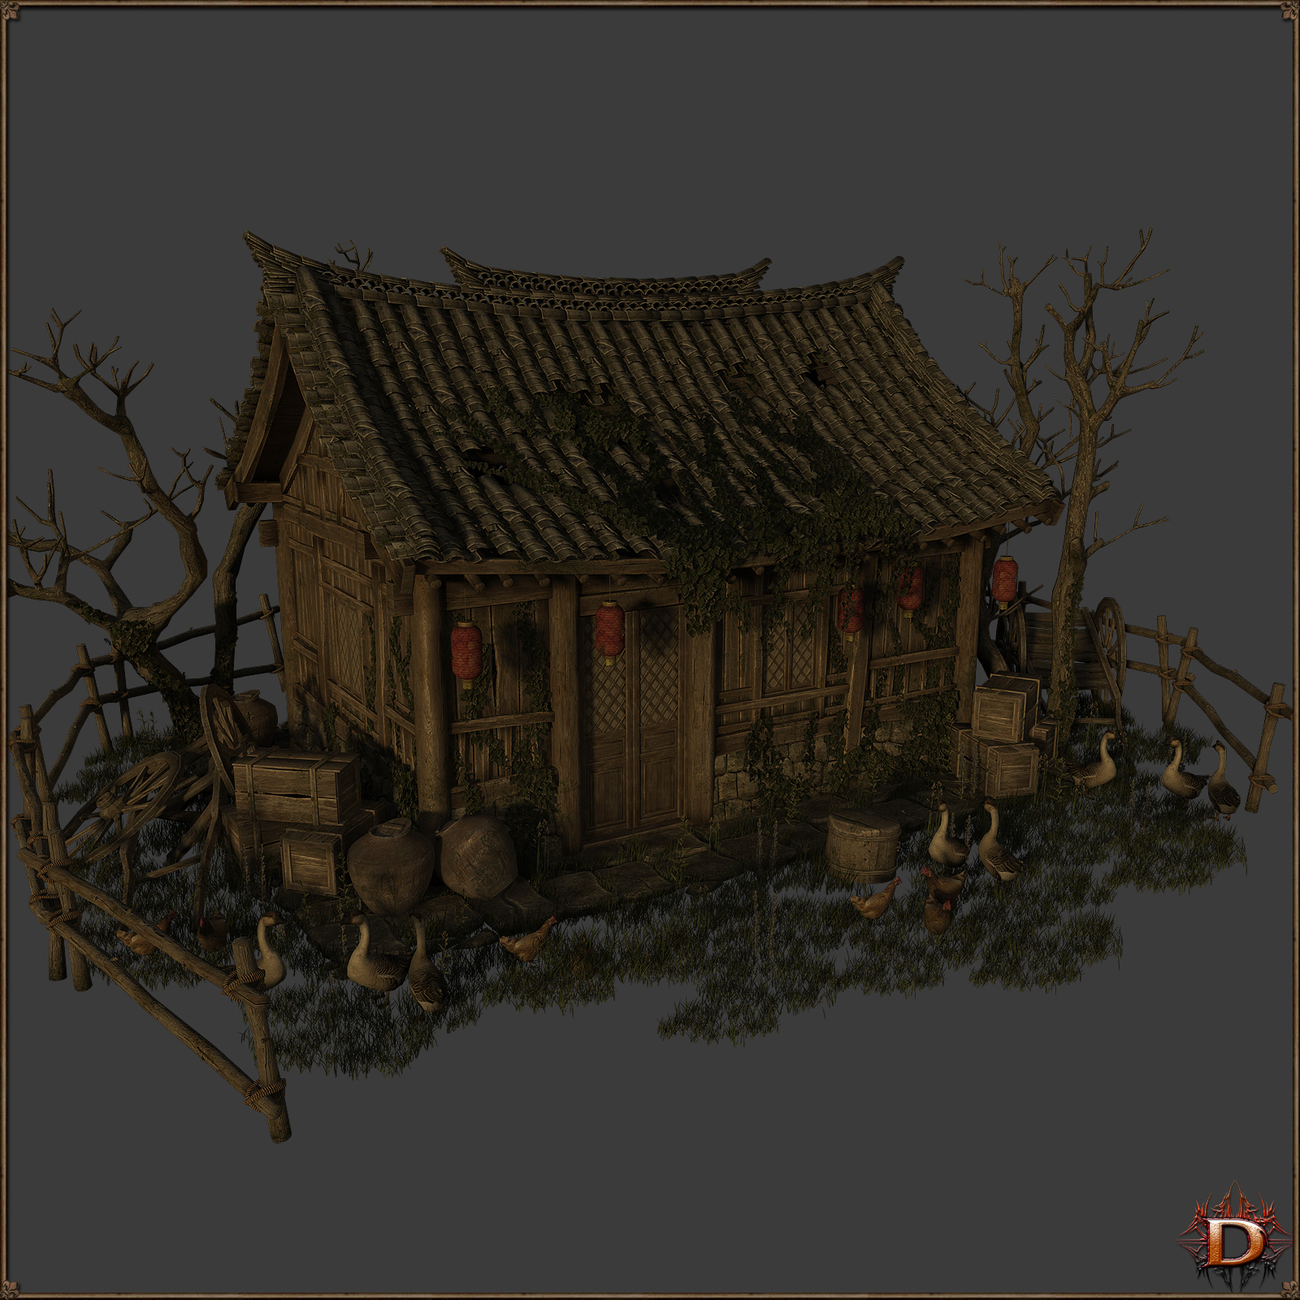 Chinese Old House1 by Dante78